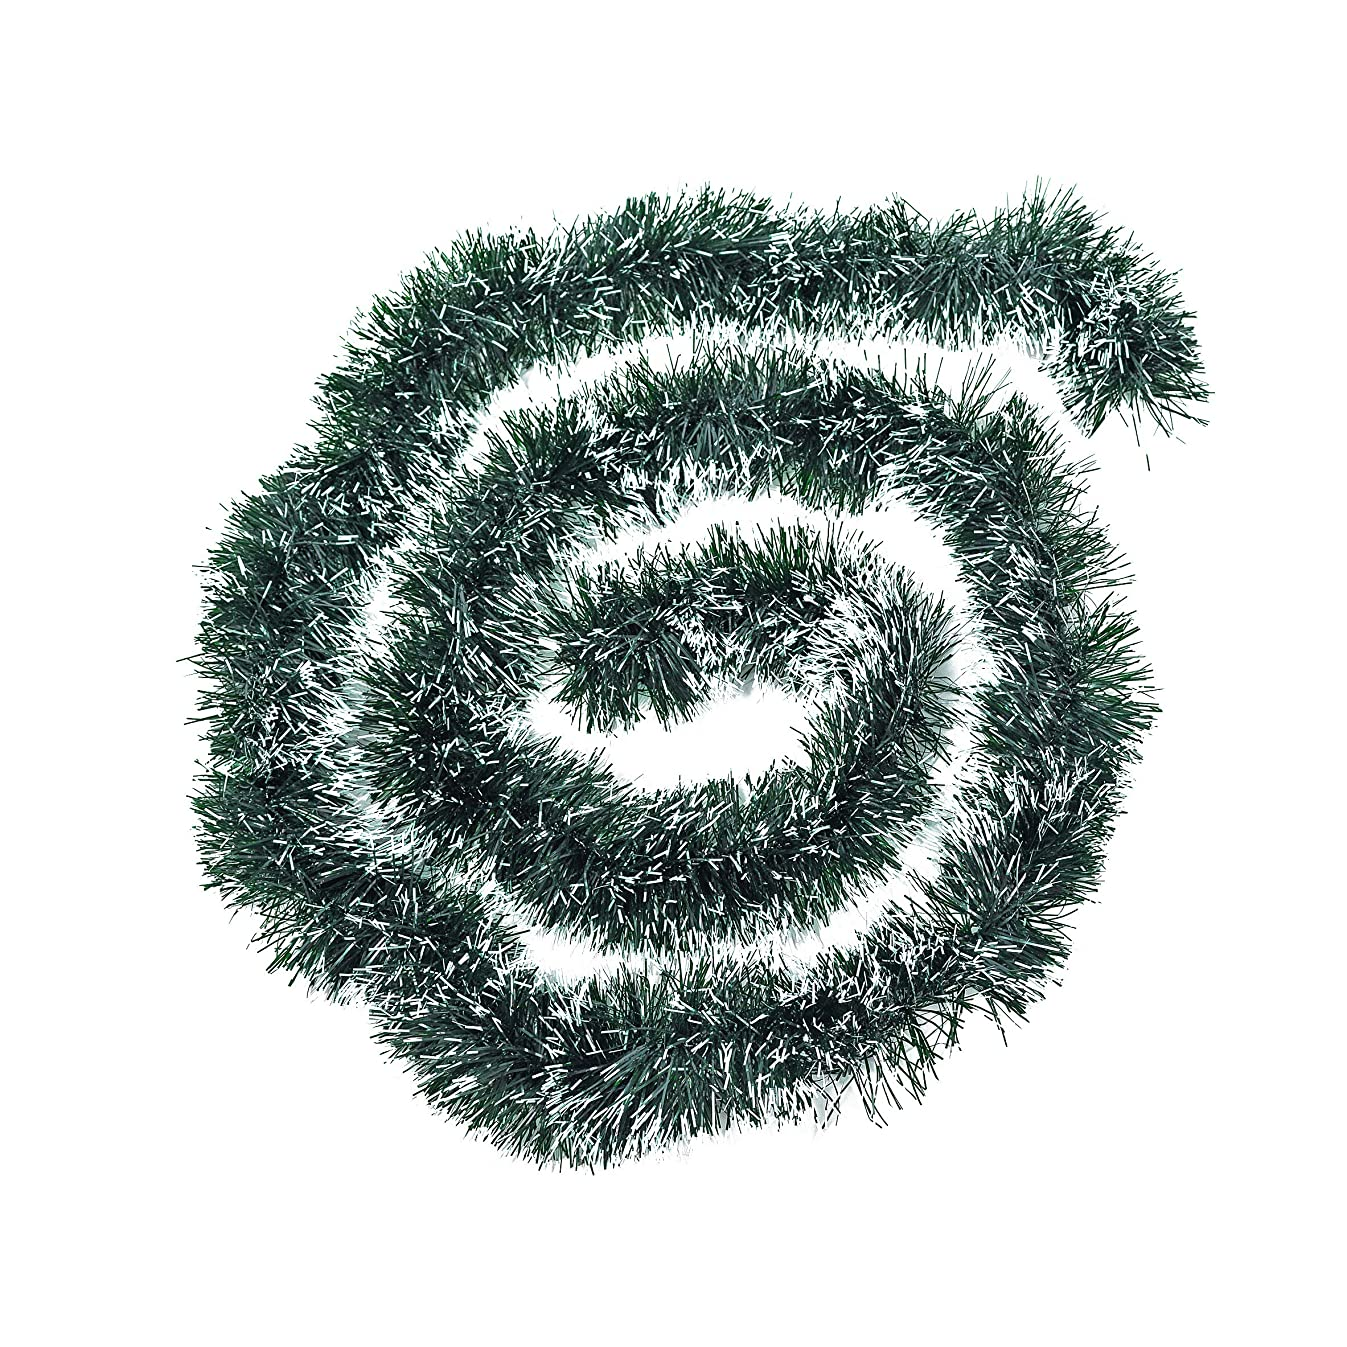 Xena 2 Piece Snowy White Tips Green Long Holiday Christmas Decoration Artificial Non-Lit Tinsel Garland Wedding Accessories 16 Feet Party Supplies Faux Tree Wreath DIY